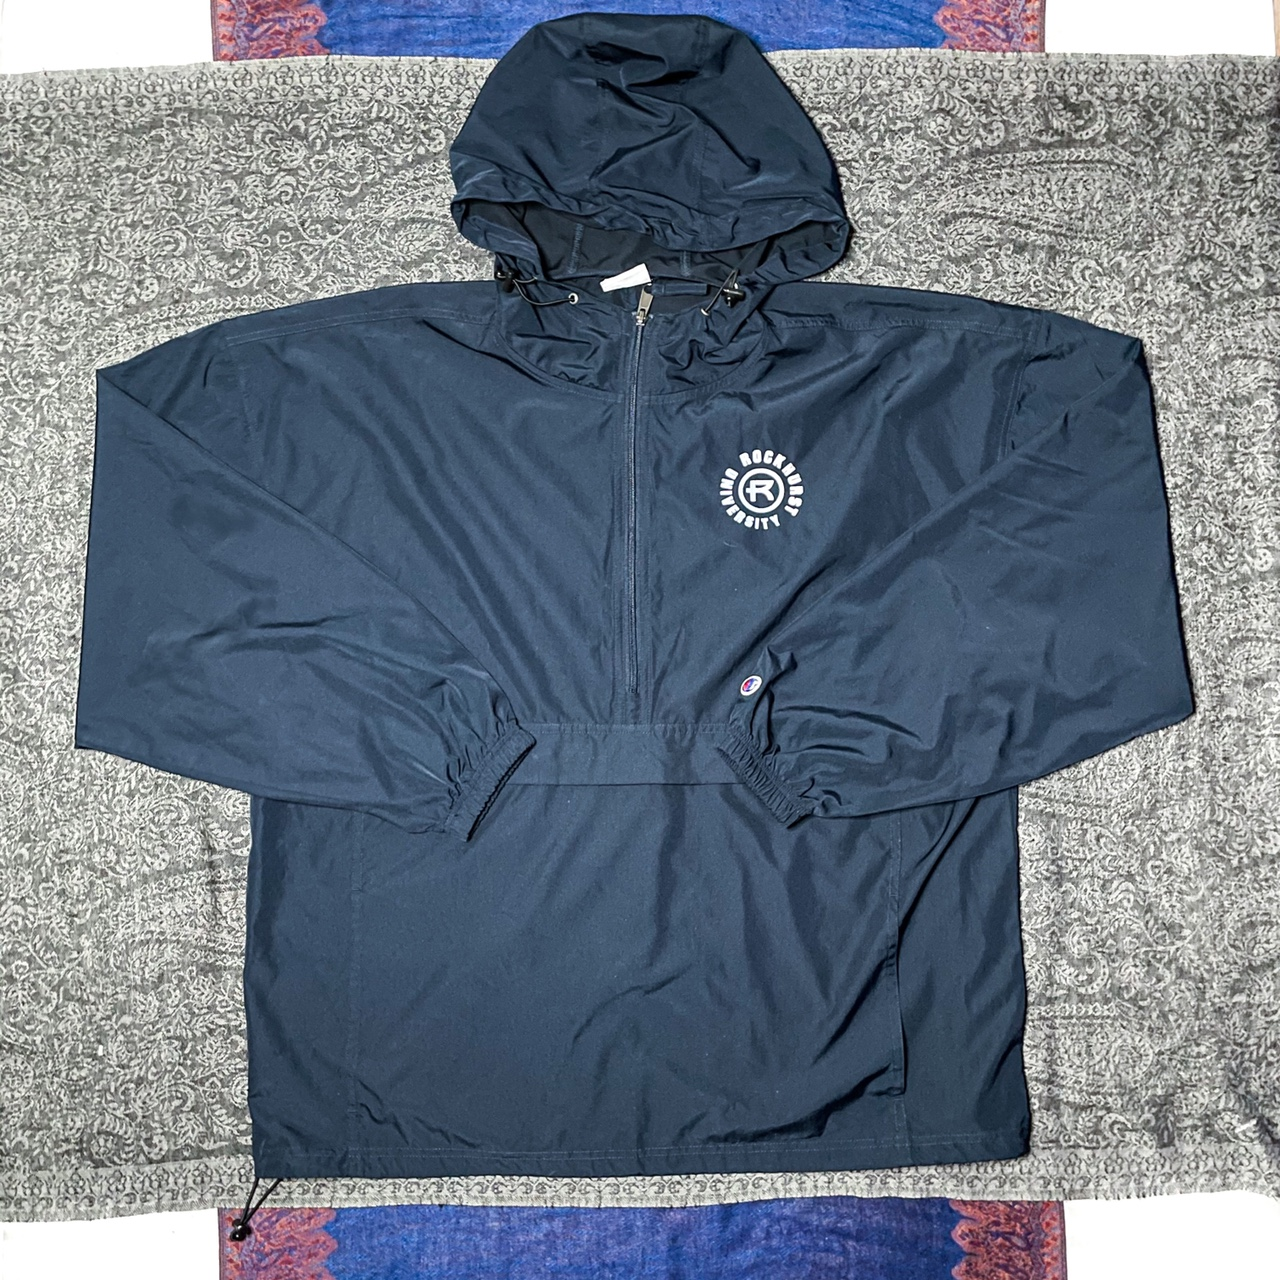 Product Image 1 - Champion Windbreaker    -Excellent condition